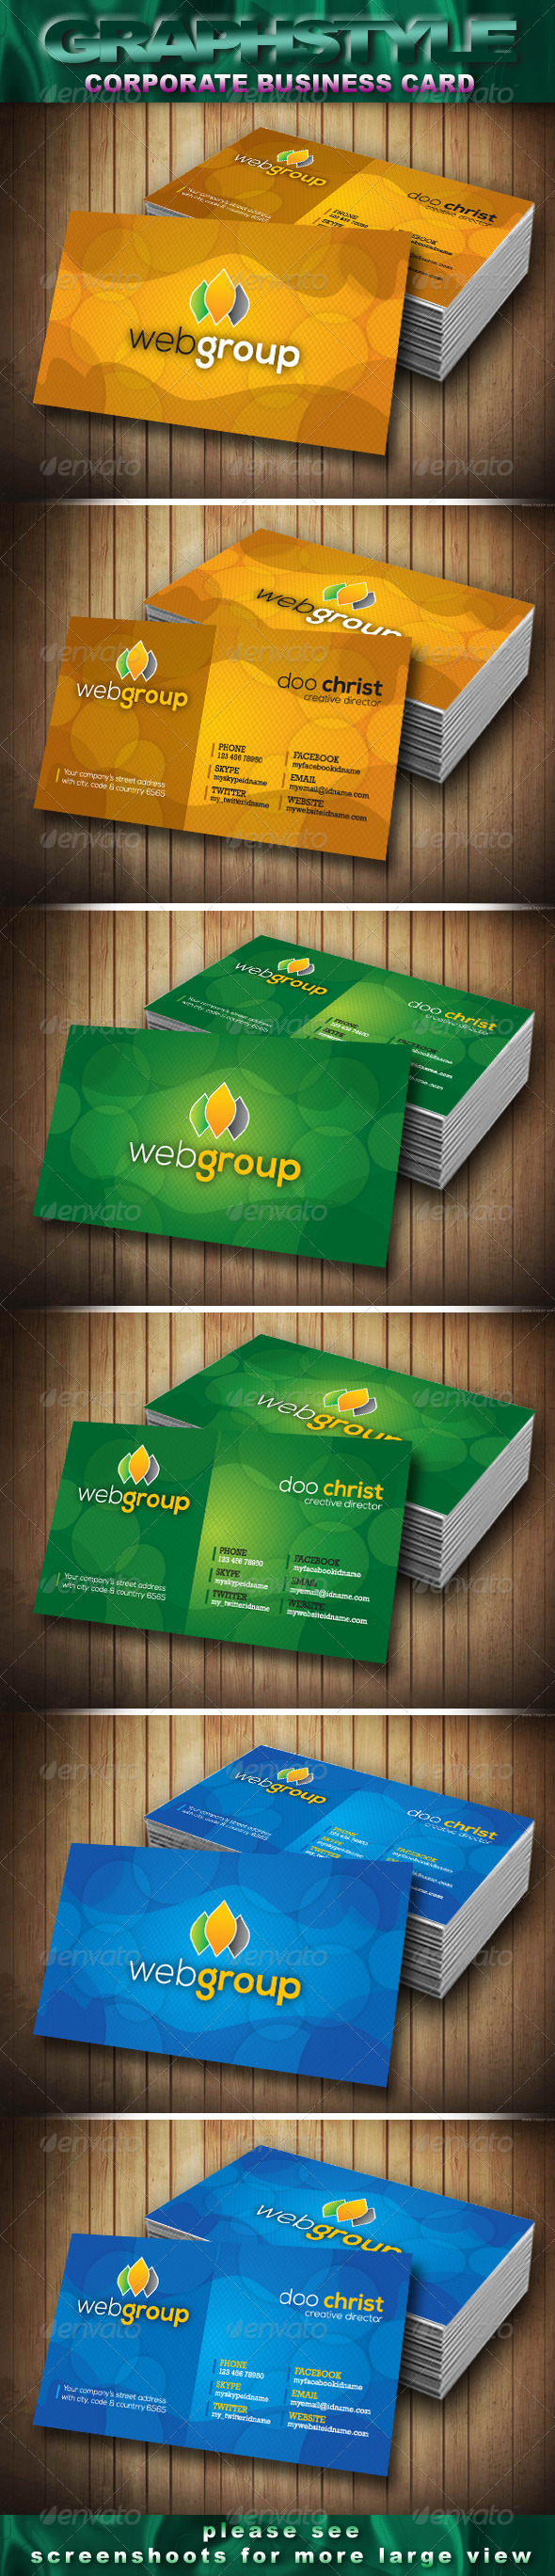 GraphicRiver Webgroup Corporate Business Card 3920831